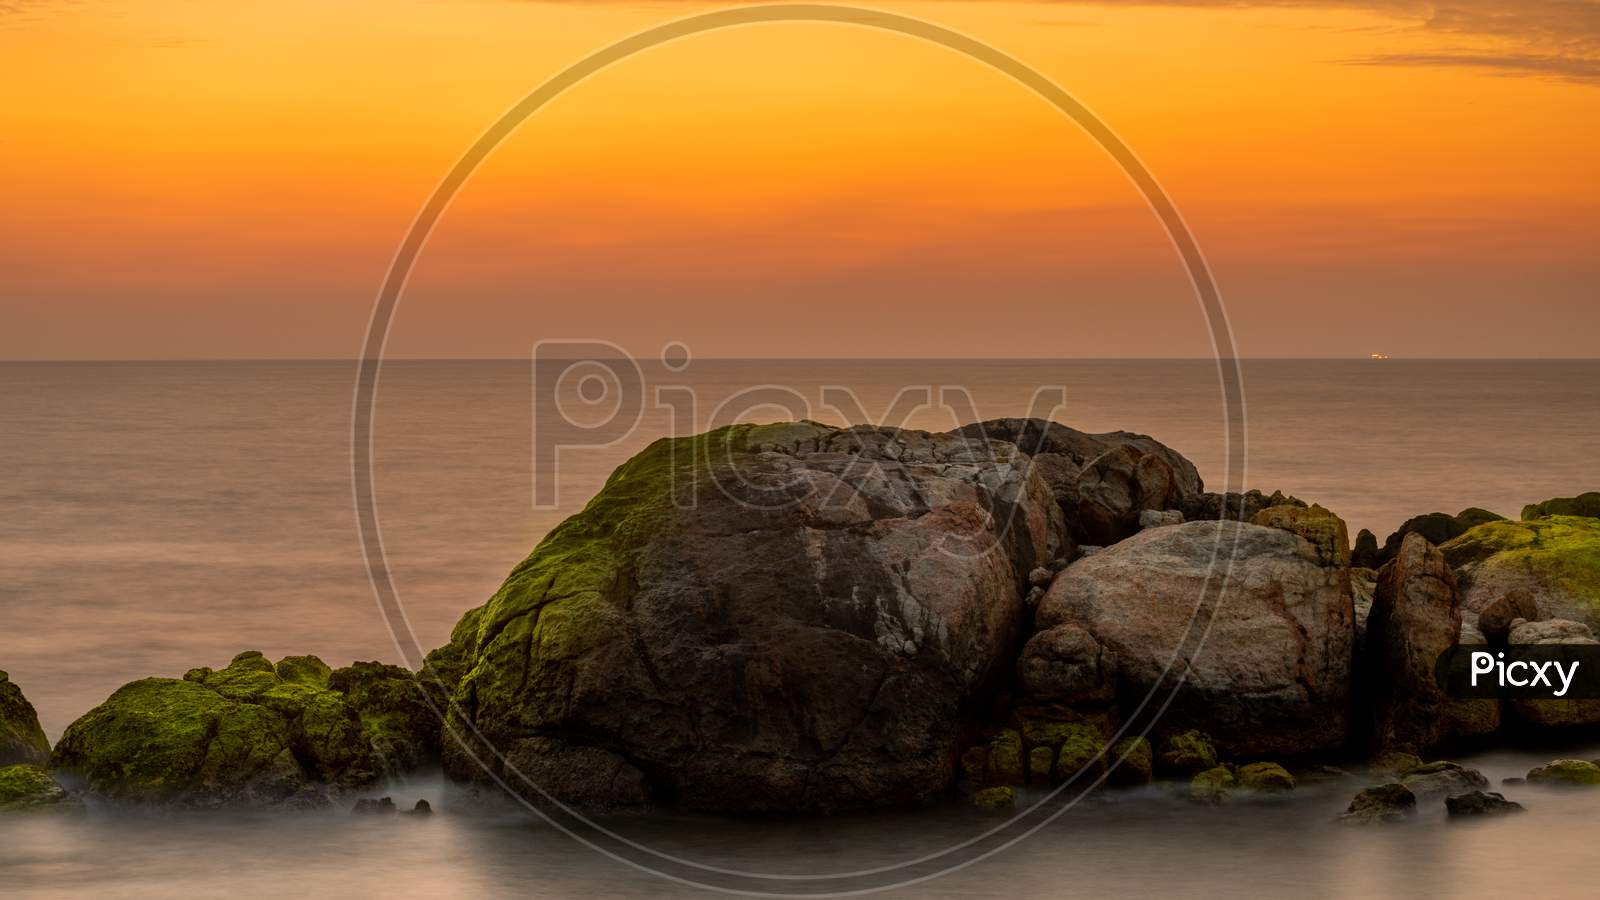 Long Exposure Golden Sunset In Galle Fort, Rocks, And Glowing Moss Creates Depth And Drama. Beautiful Compositional Rock Formation In The Foreground As The Sun Has Set On The Sea Horizon.